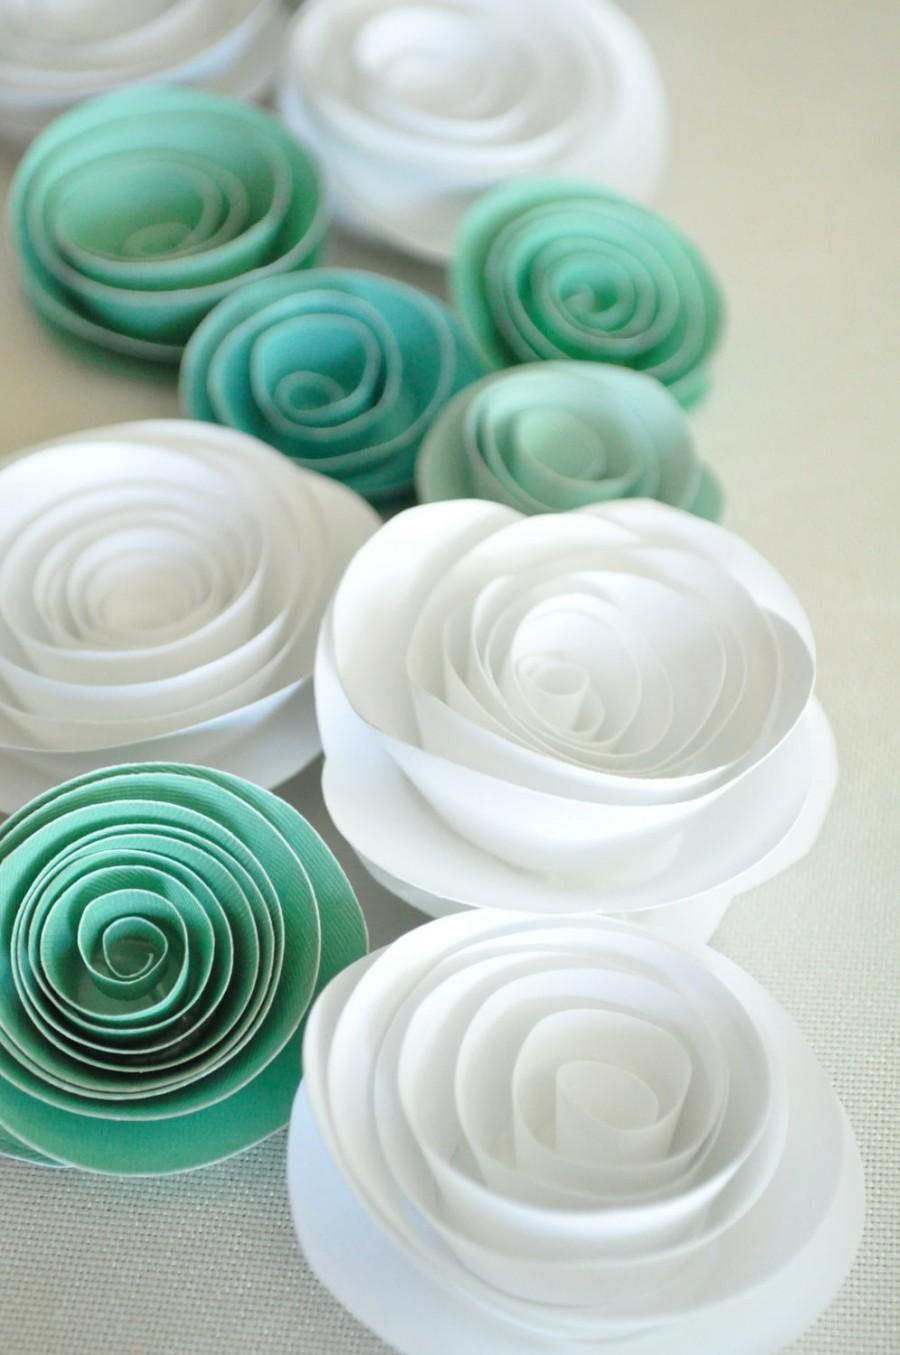 Hochzeit - Paper Flowers Teal and White Paper Flowers Wedding Table Decorations 25 flowers